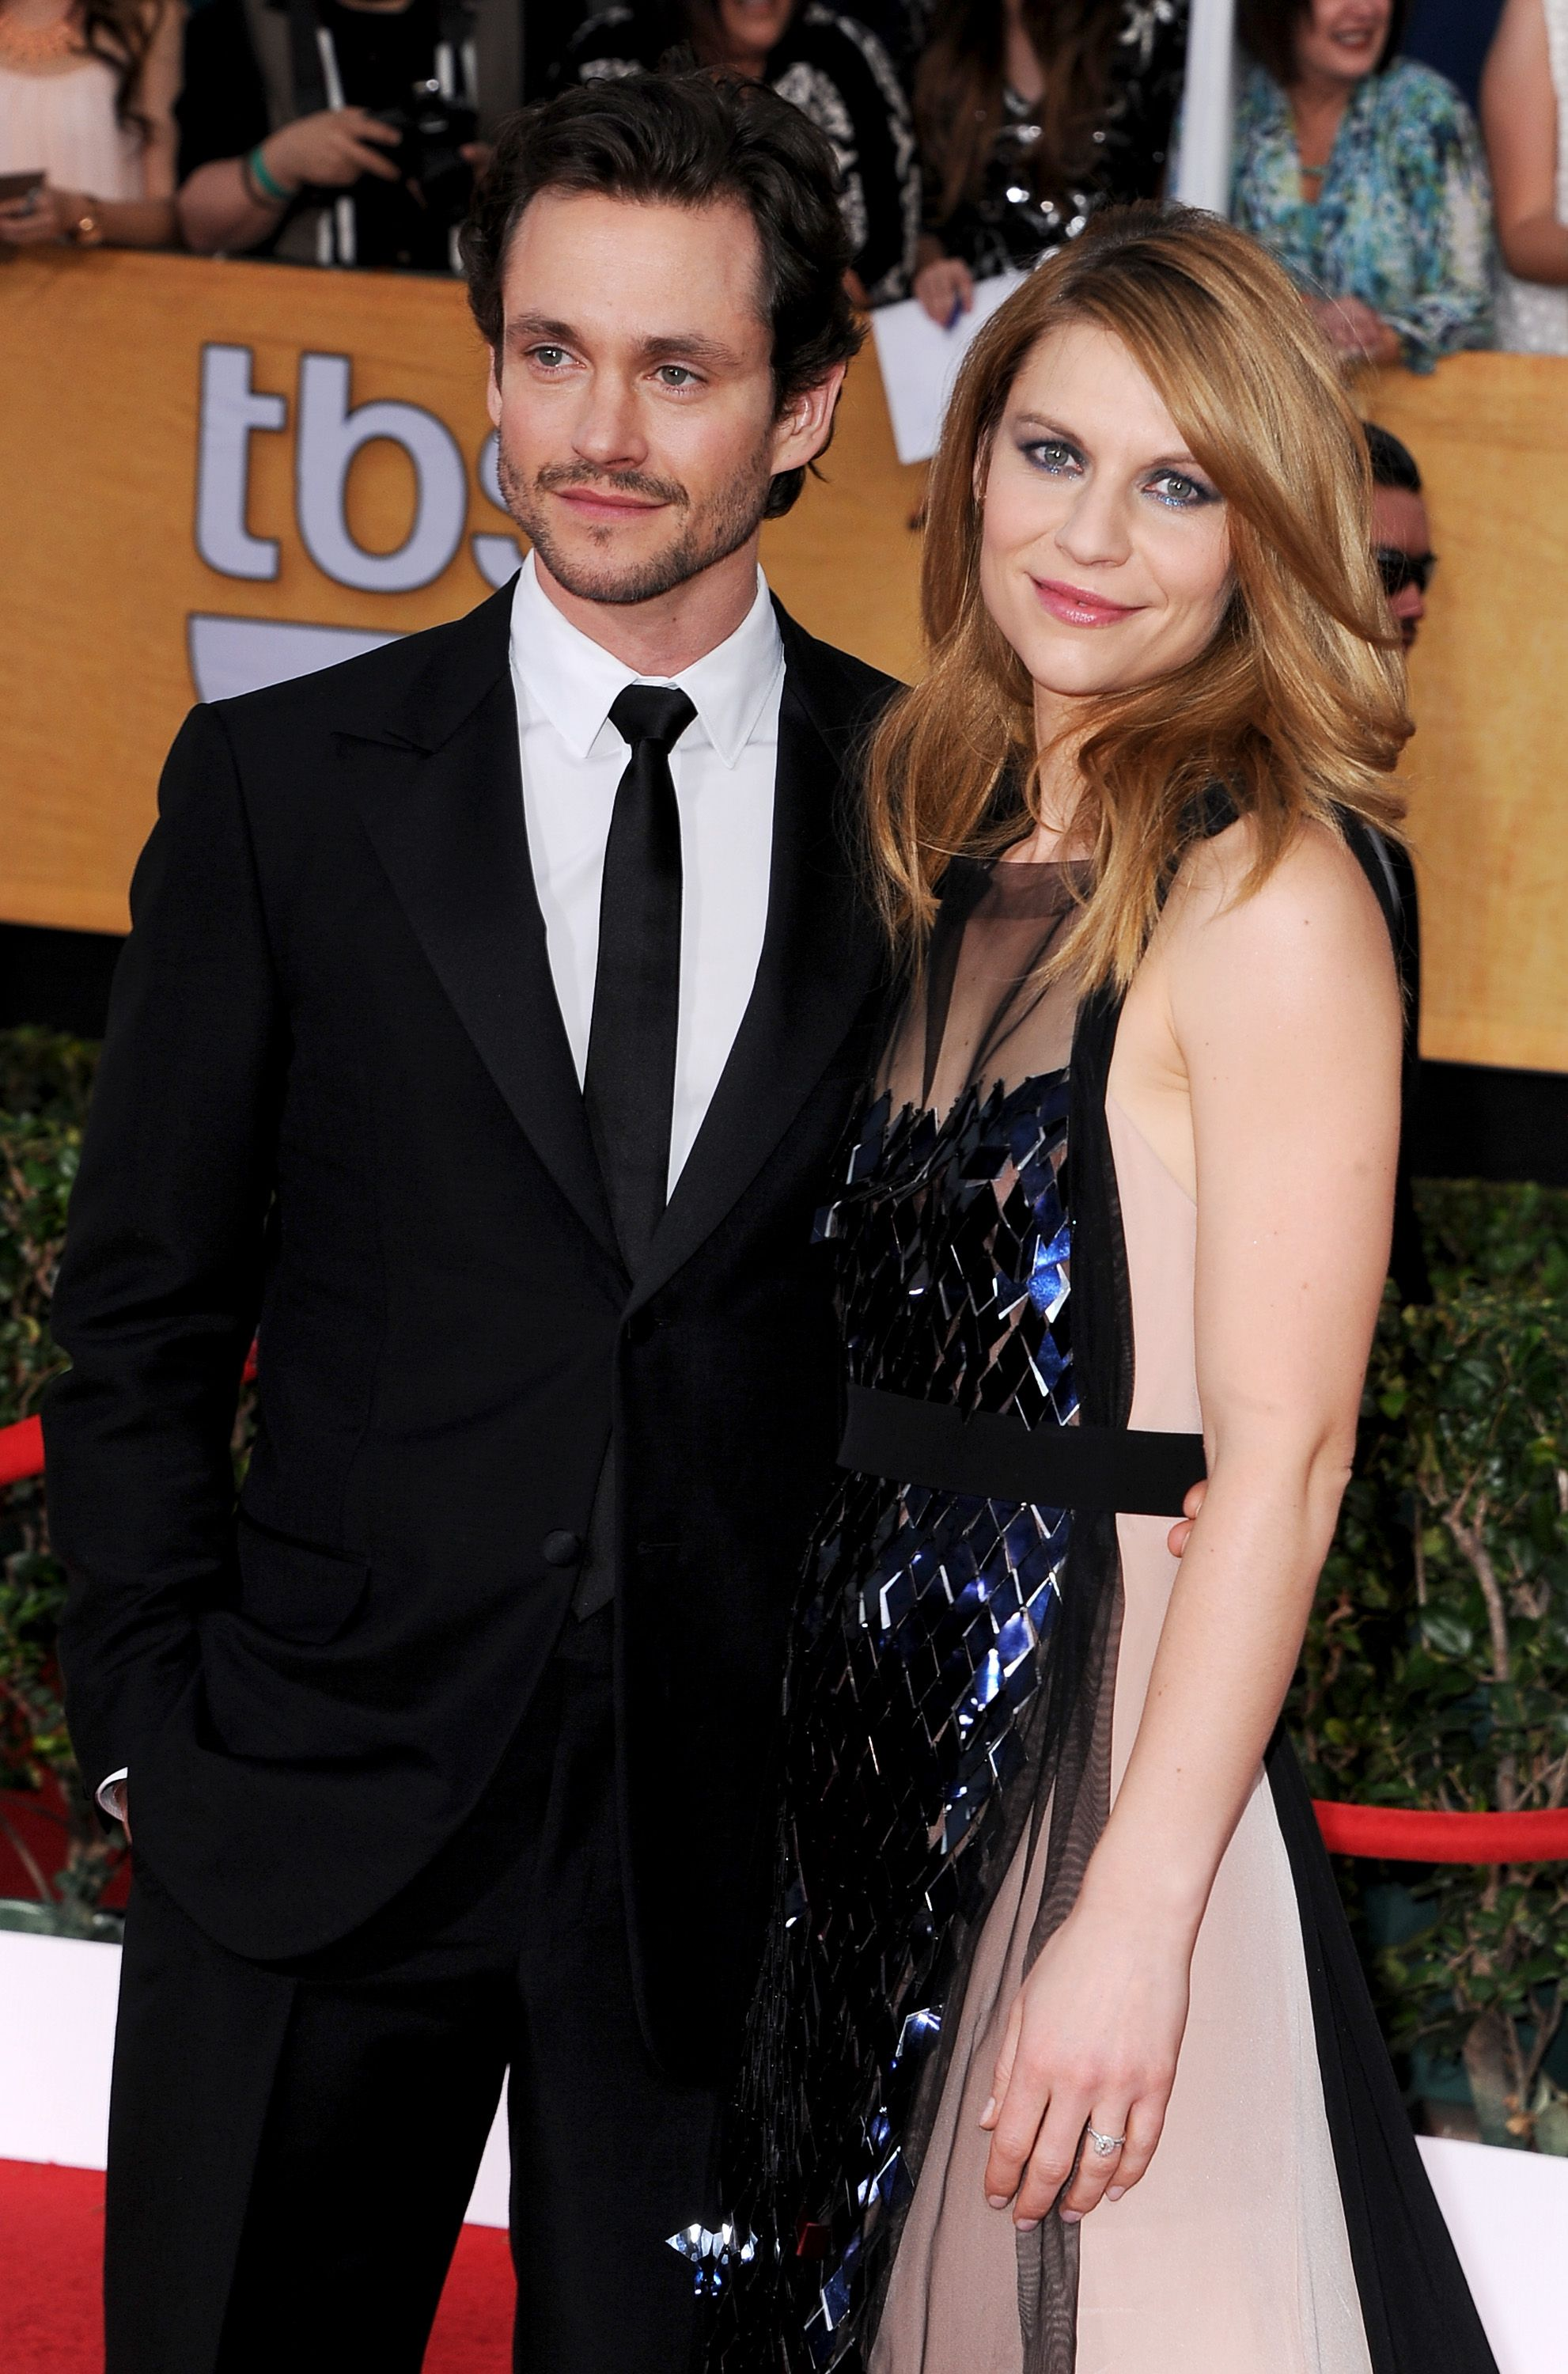 Hugh Dancy and Claire Danes - 20th Annual Screen Actors Guild Awards, 2014 (high quality)